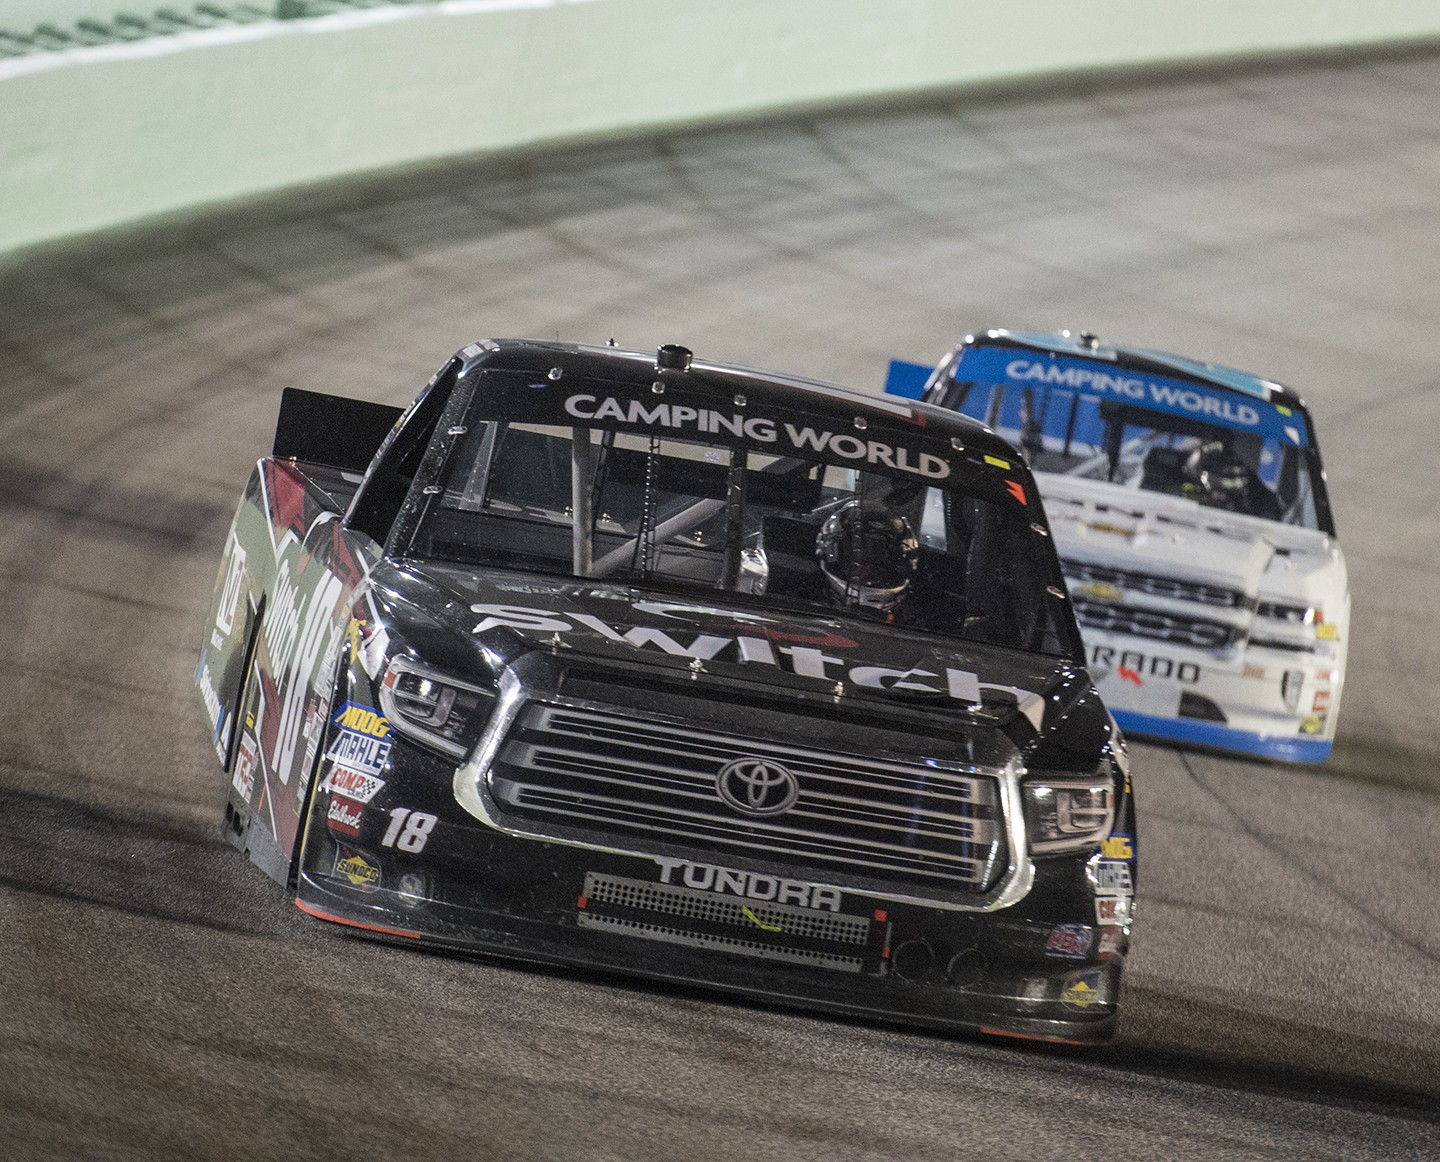 El conductor de Camping World Truck Series Noah Gragson (18) durante la Camping World Truck Series 2017 en Homestead Motor Speedway en Homestead, Florida, el viernes 17 de noviembre de 2017. El piloto de Camping World Truck Series Chase Briscoe (29) ganó la carrera y acampó. El piloto de World Truck Series Christopher Bell (4) ganó el Campeonato de la Serie de Camionetas. (Donald Edgar / El Latino Digital)